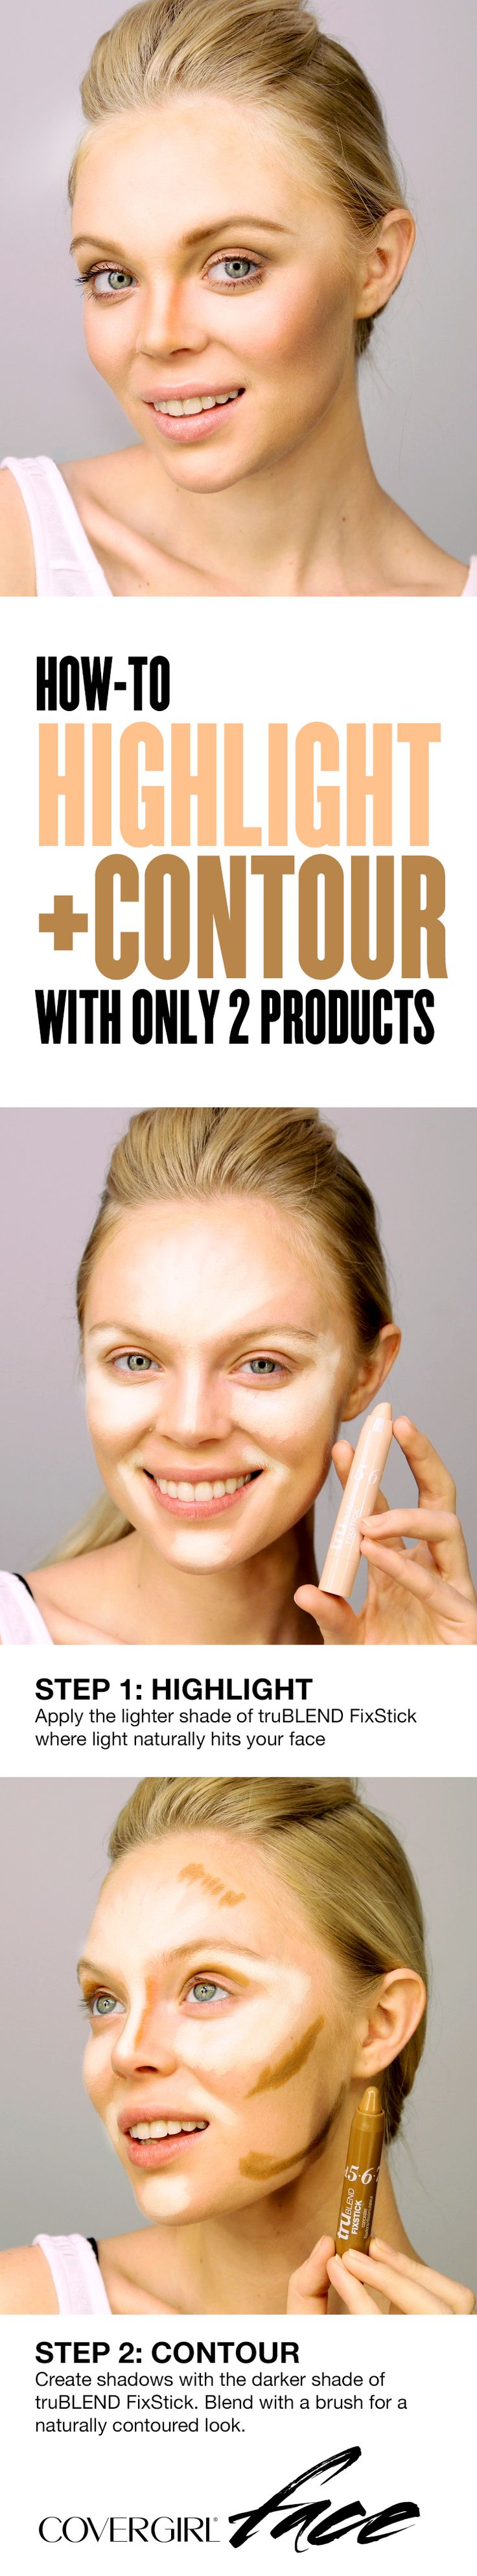 Learn how to contour with only 2 products. First, highlight down the bridge of your nose, on your chin, and in upward strokes on the high plane of your cheekbones and center of the forehead using truBLEND FixStick in a shade lighter than your skin tone. Second, contour by creating shadows in the hollows of your cheeks and along your hairline and jaw with a shade of truBLEND FixStick that's darker than your natural skin tone.